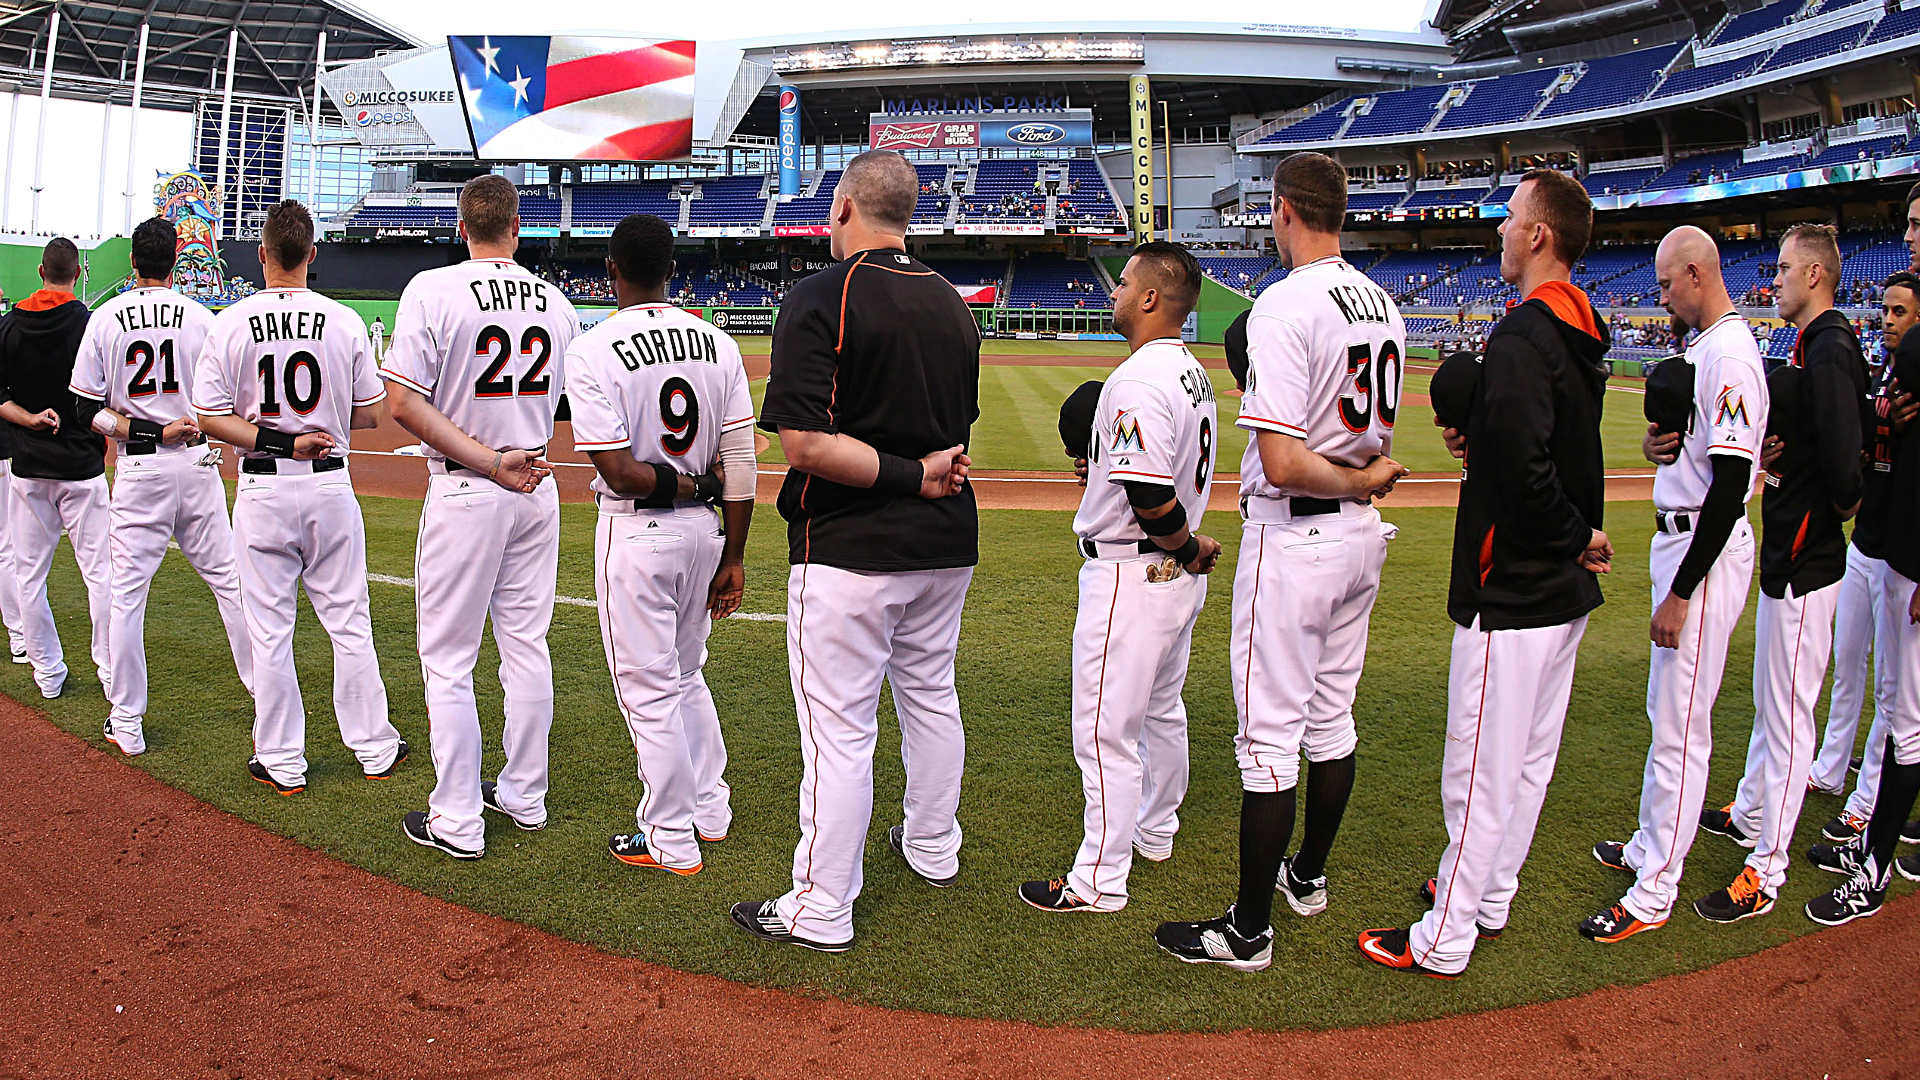 Frustrated Marlins players skip out on charity event